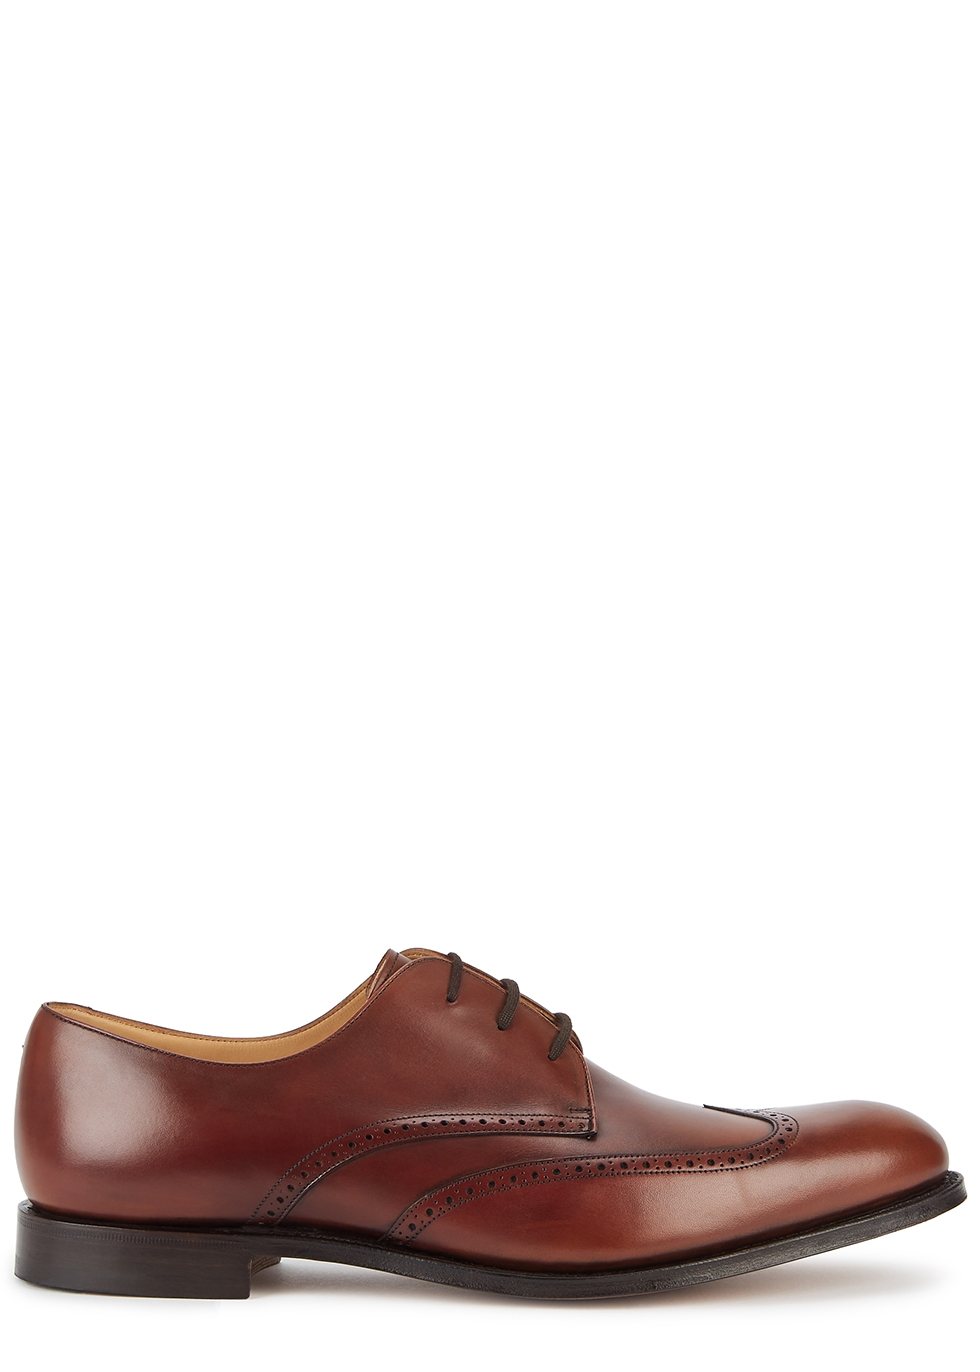 Glasgow chestnut leather Oxford shoes